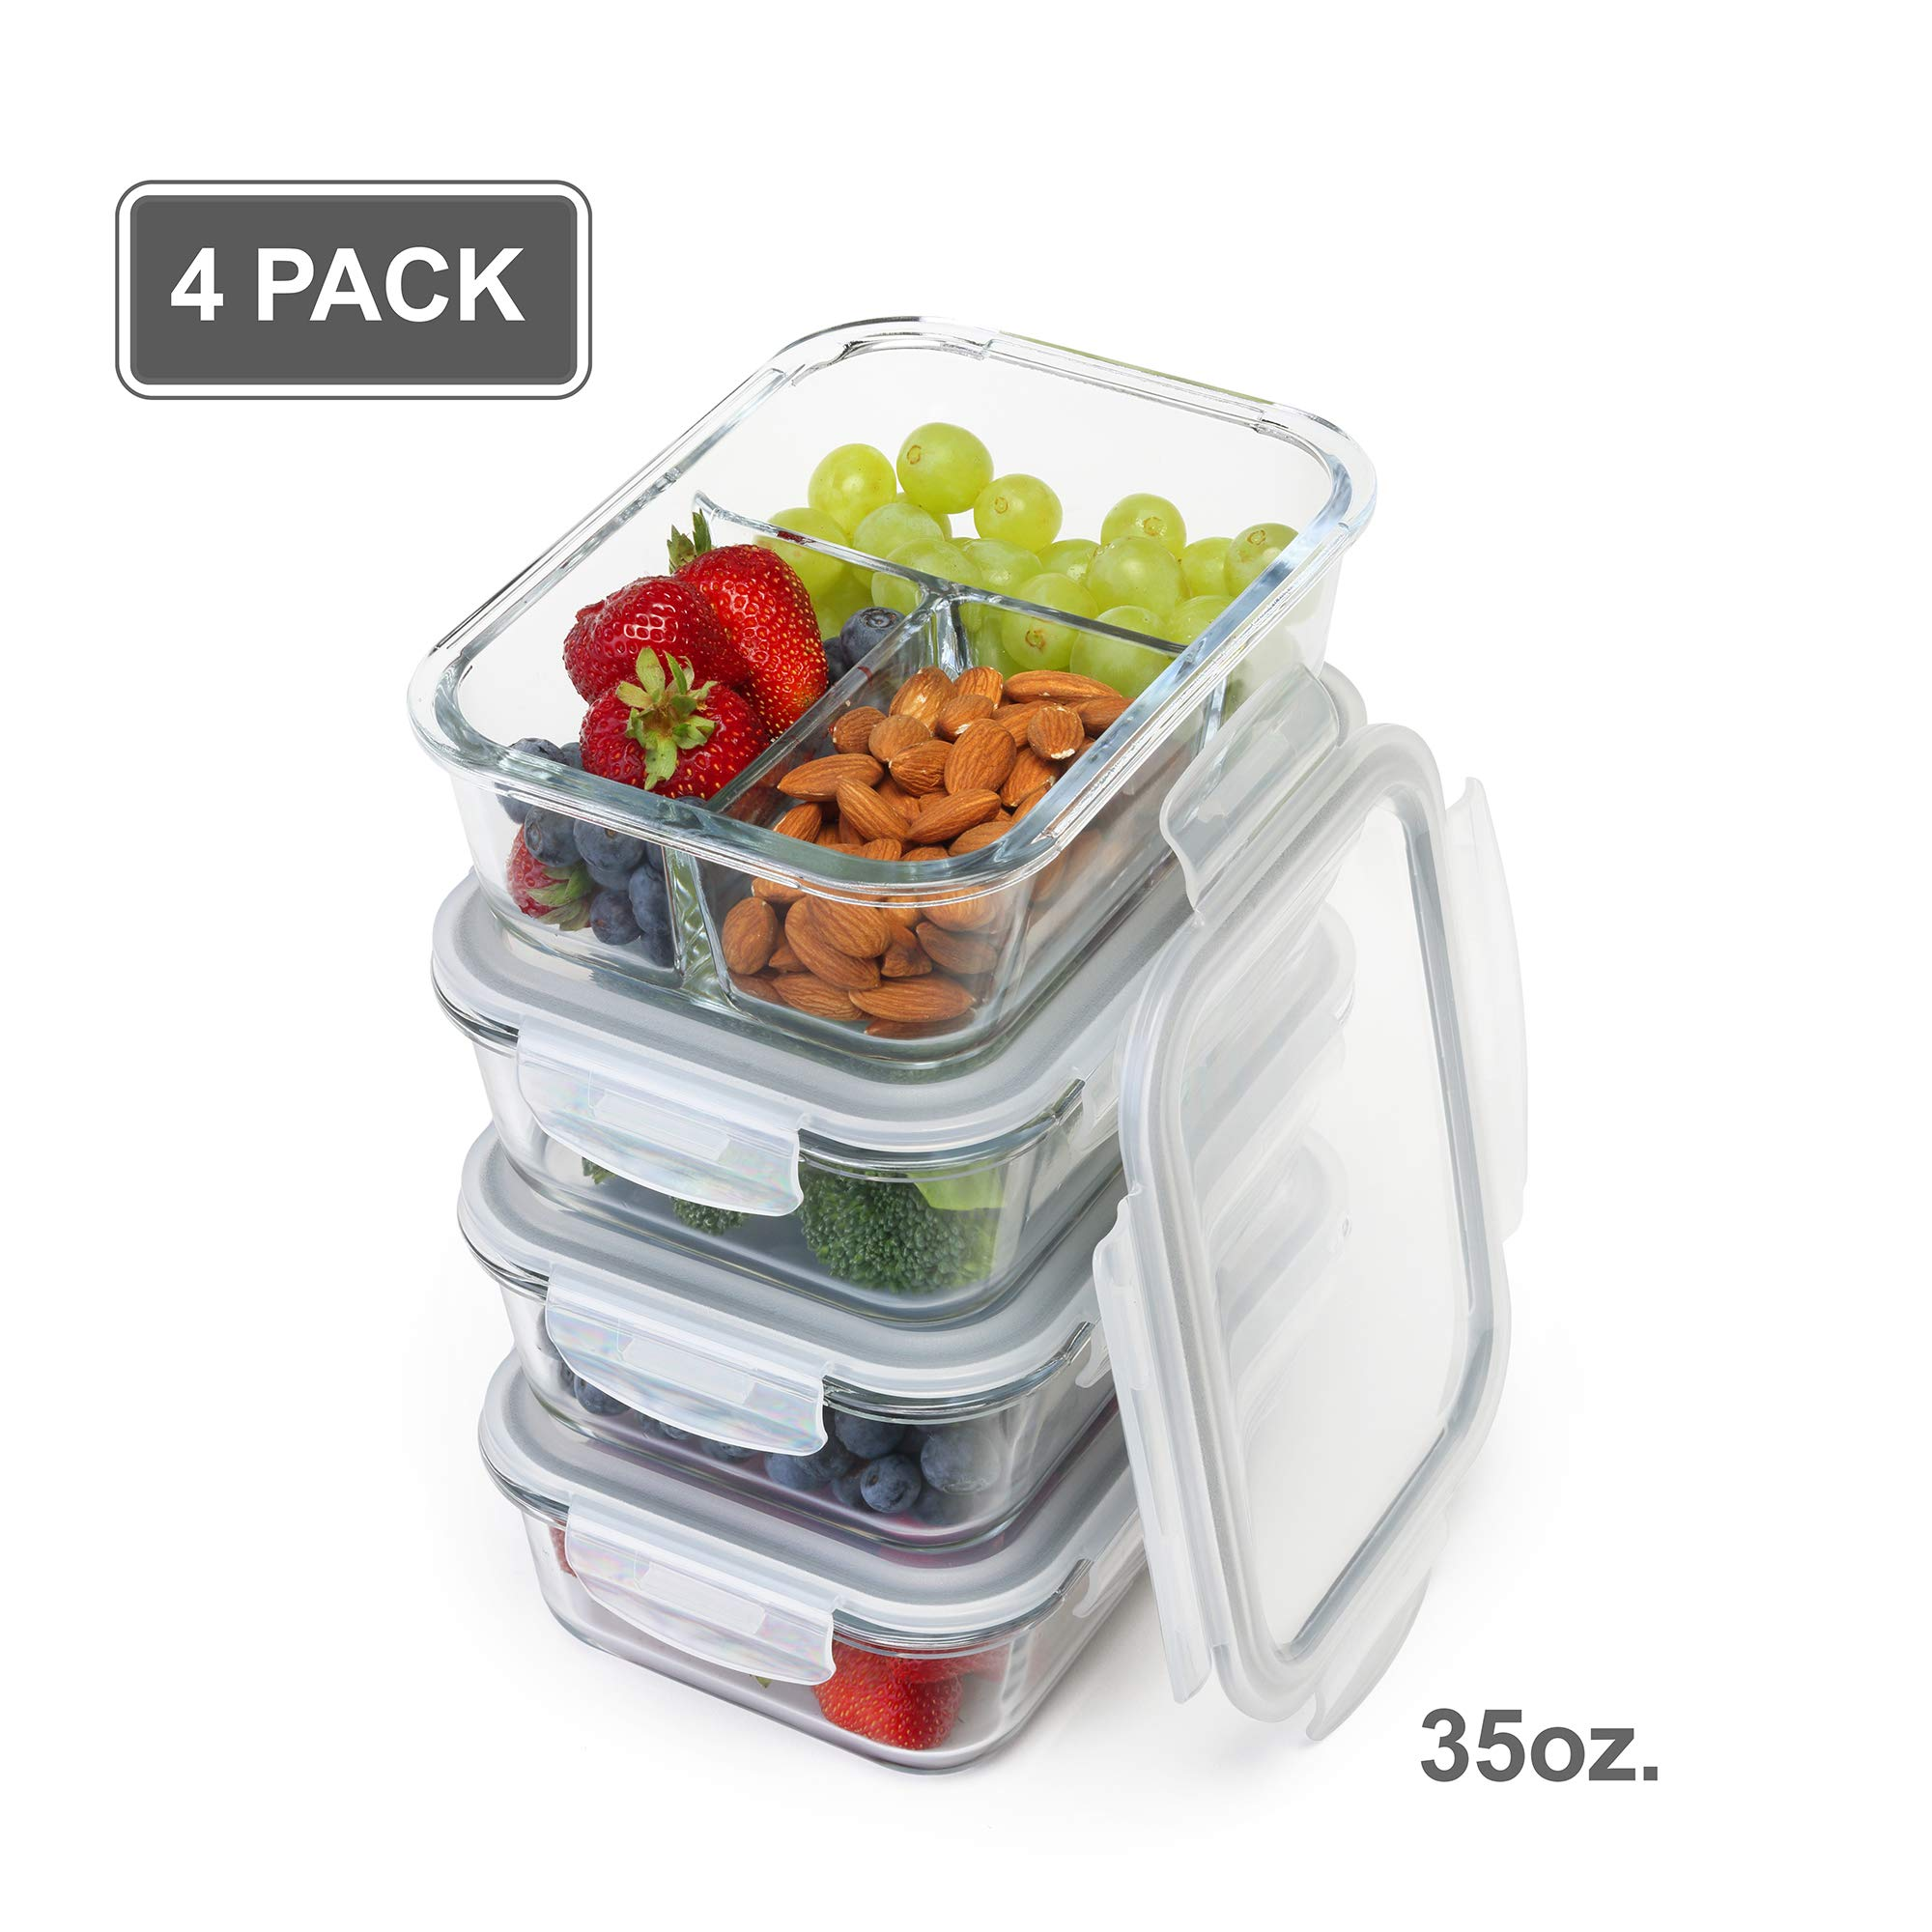 [4-Pack] Glass Meal Prep Containers - Bento Box Food Storage Containers - 1+2+2+3 Comp - Leak Proof lids - BPA FREE - Lead Free - FDA Authorized - Dishwasher, Oven, Microwave, Freezer Safe [35 Ounce]